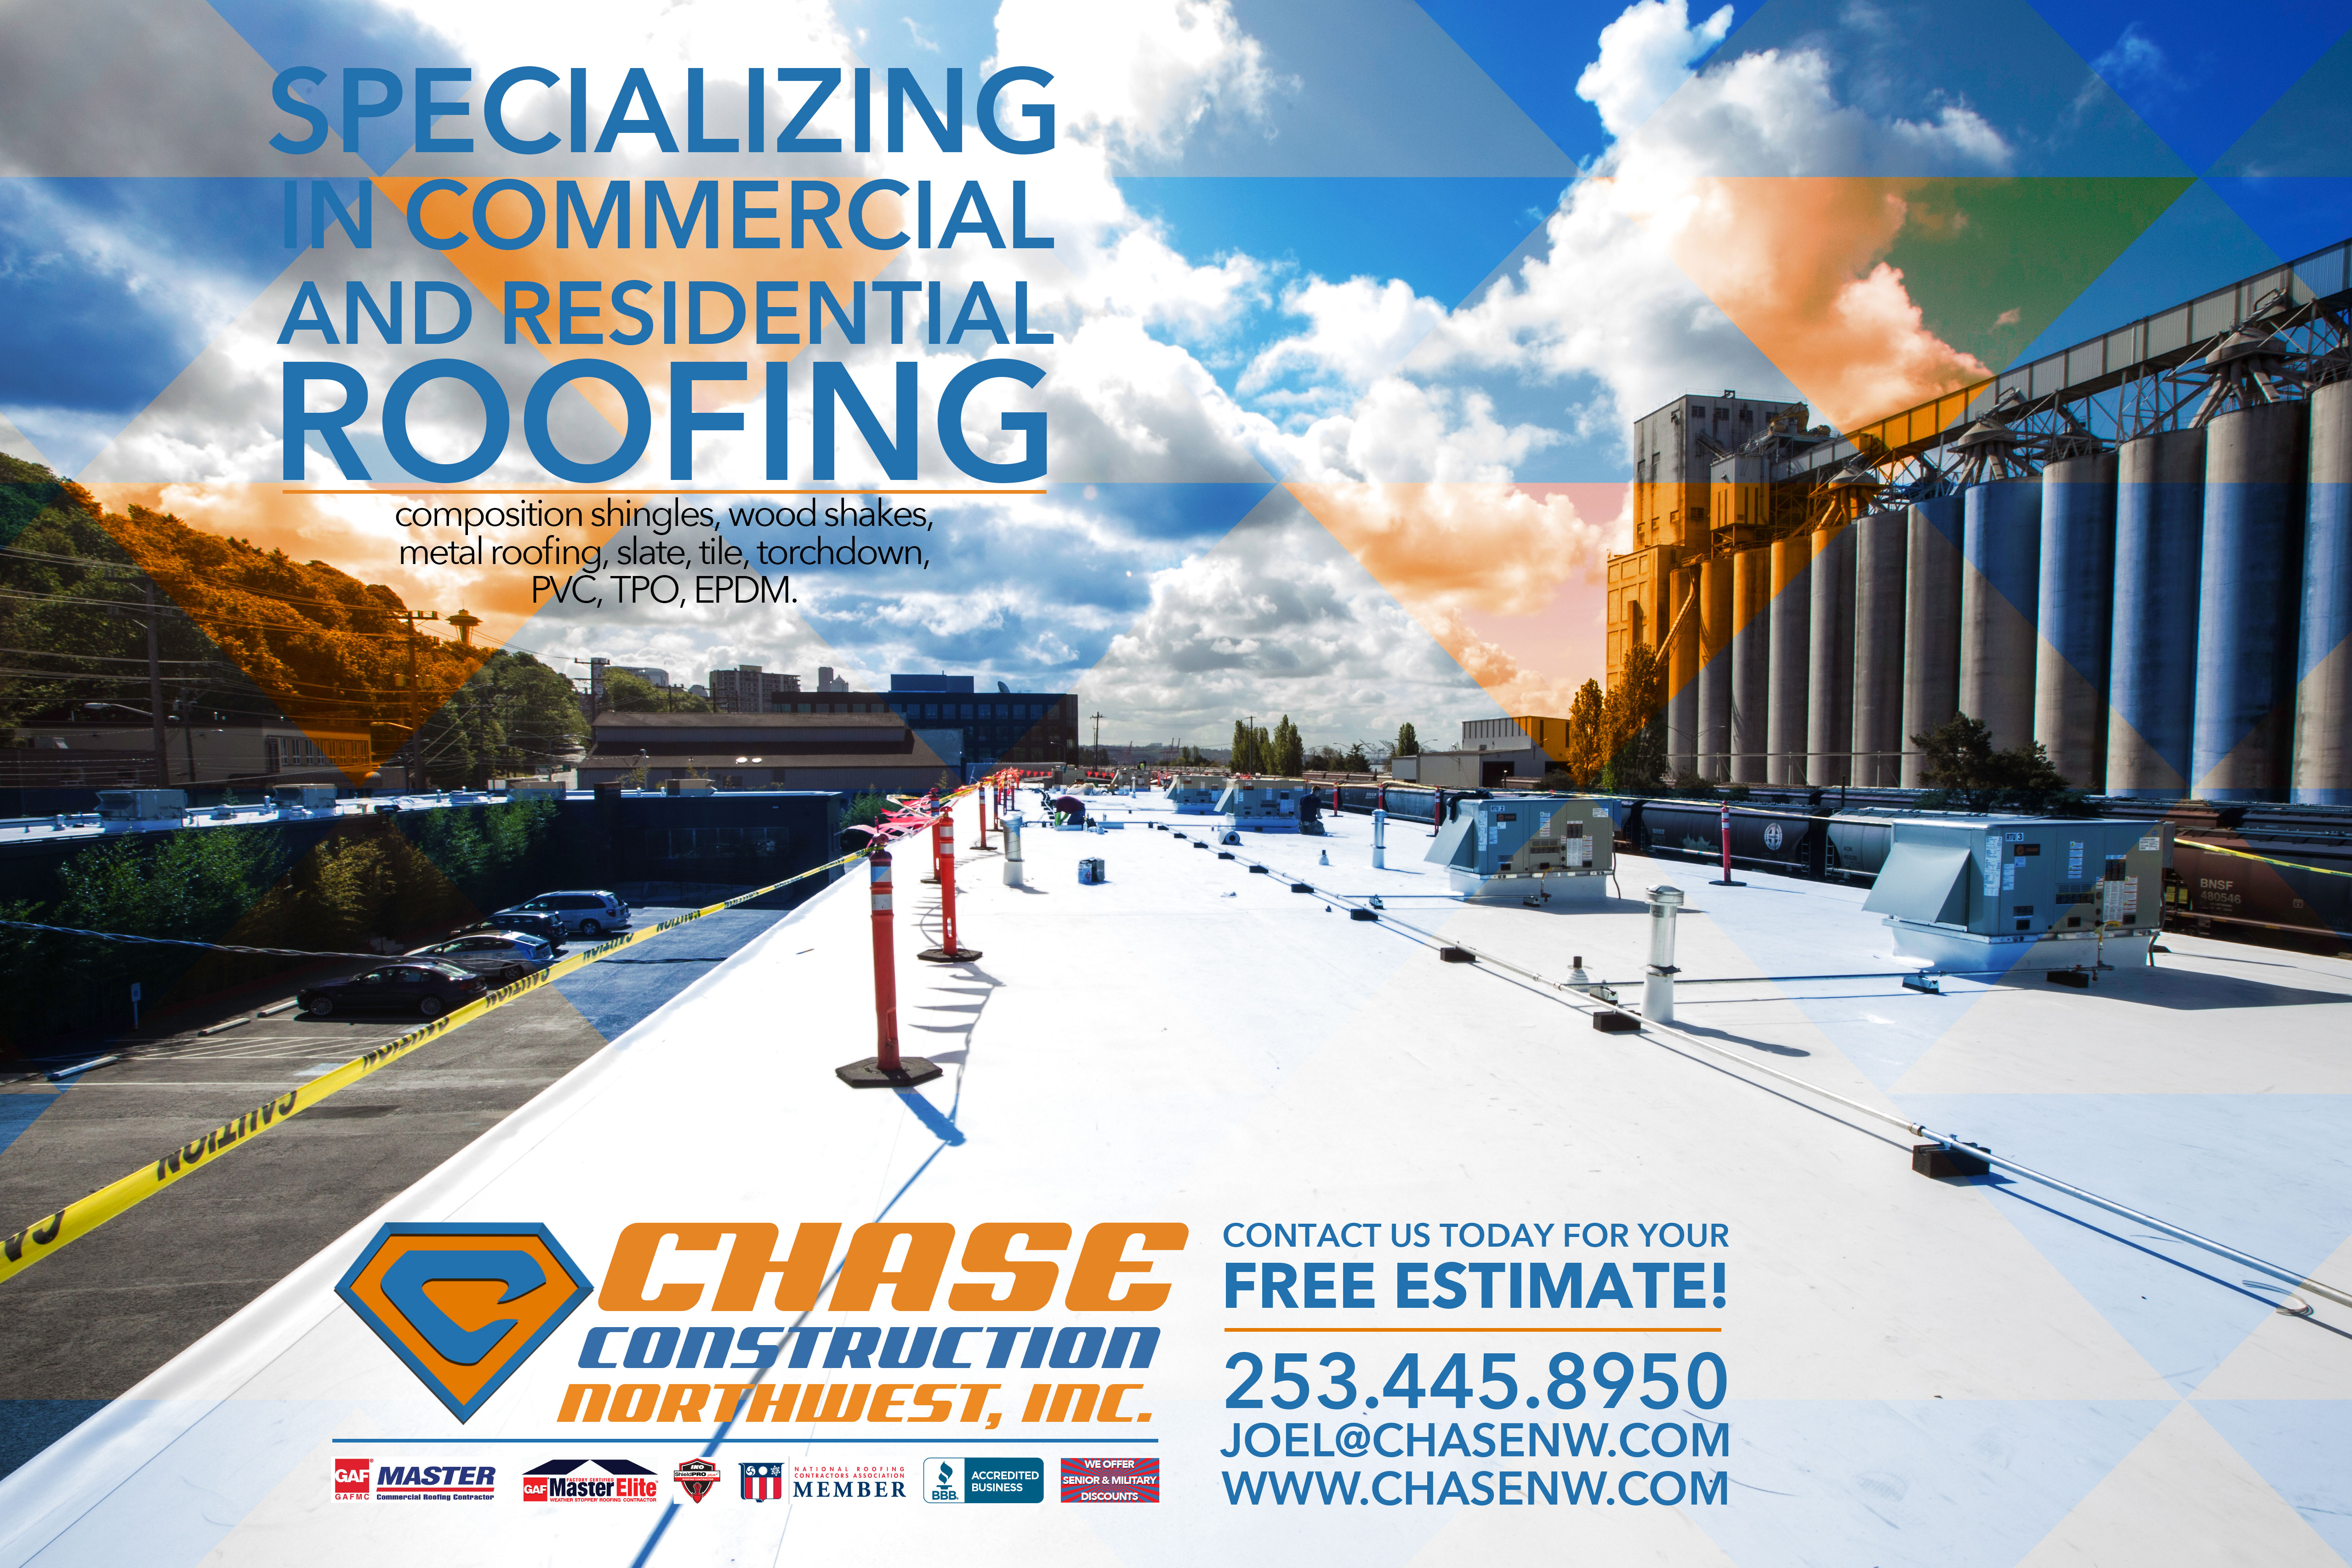 Commercial Roofing Chase Construction North West Inc.